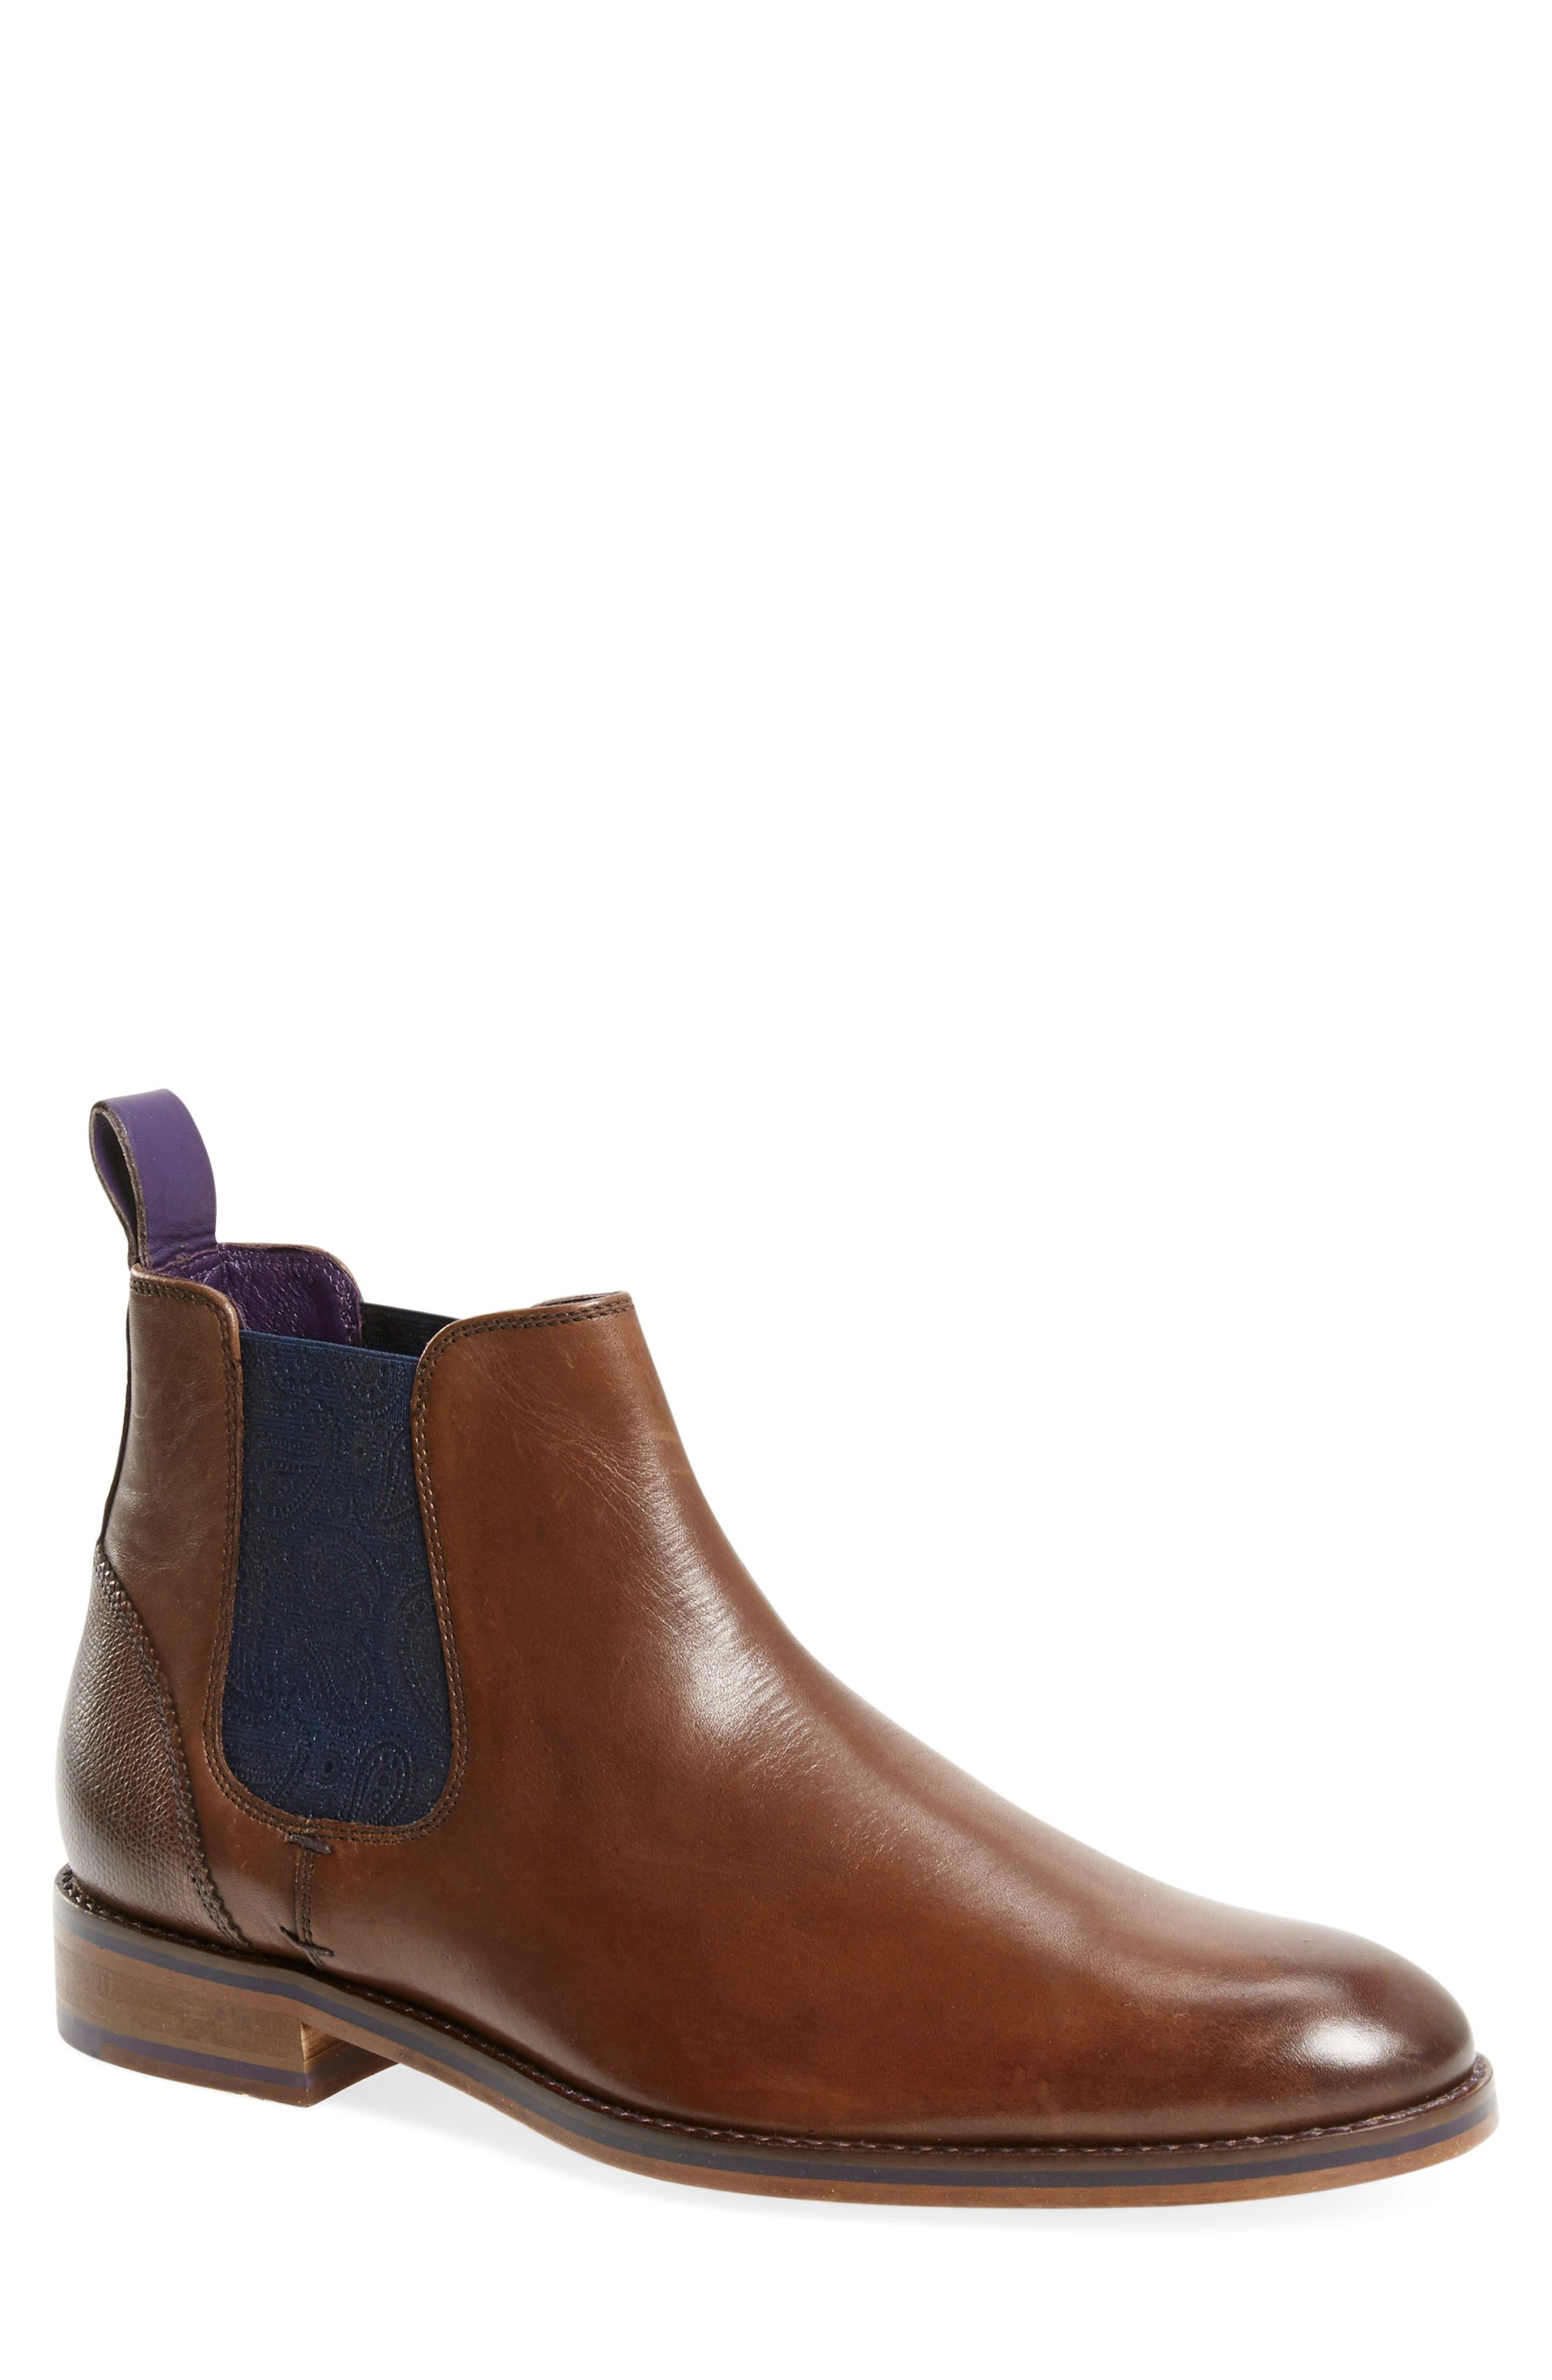 TED BAKER LONDON, 'Camroon 4' Chelsea Boot, Main thumbnail 1, color, 219